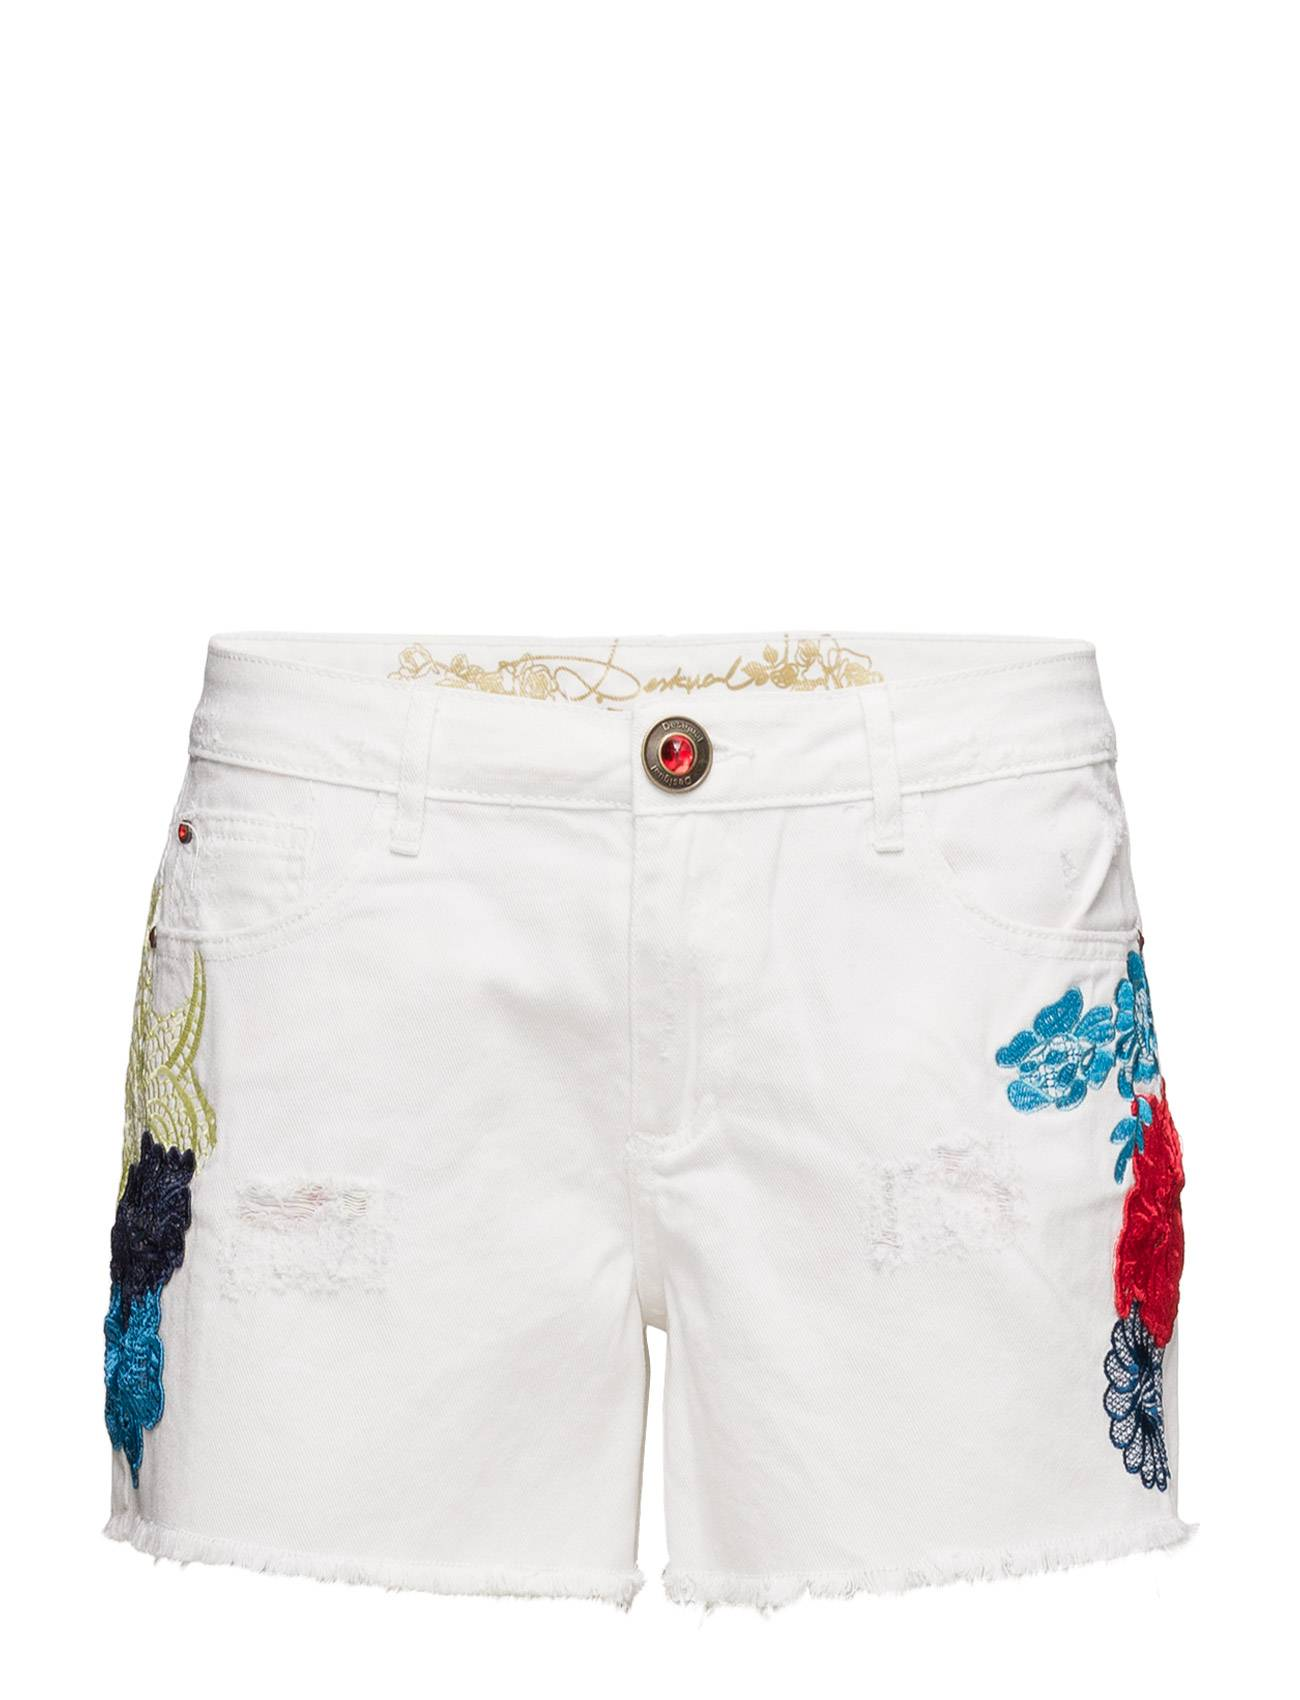 Desigual Denim Blondie Fiesta